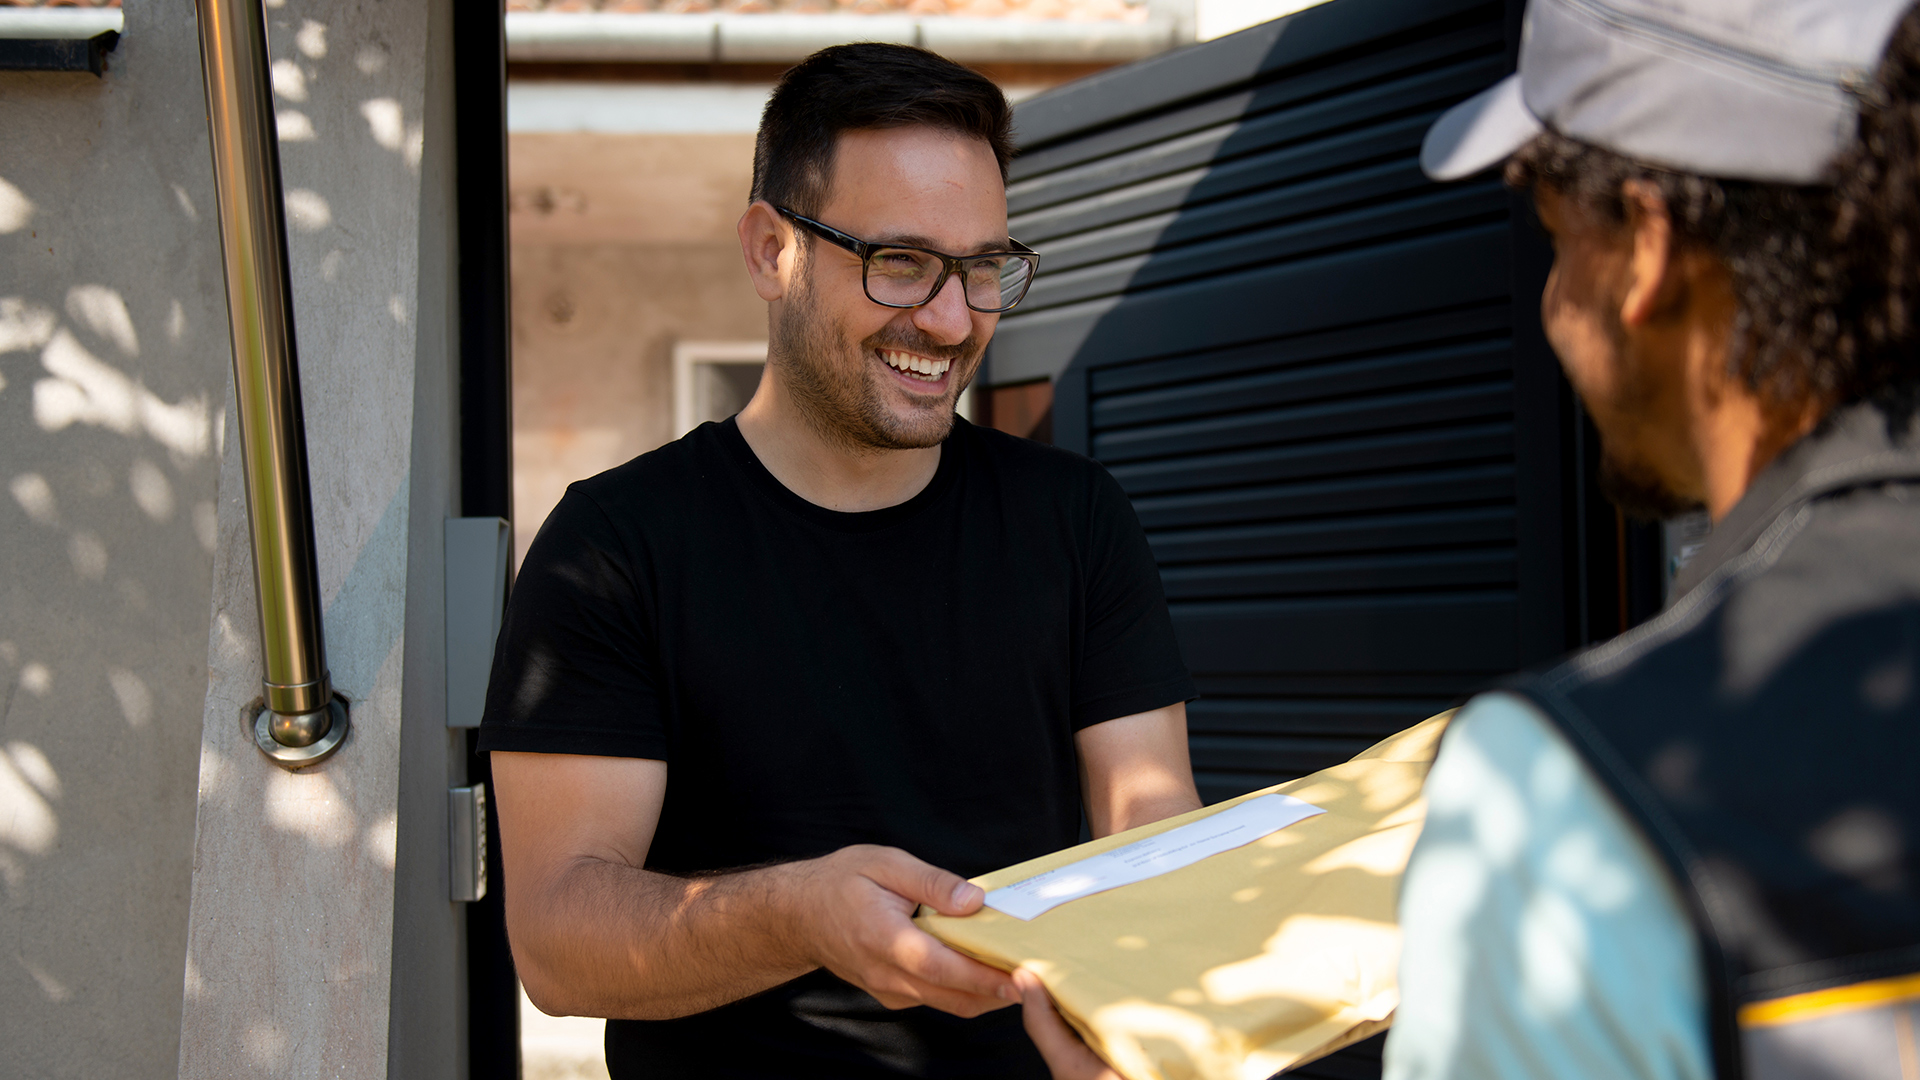 deliveryman giving a parcel a happy customer